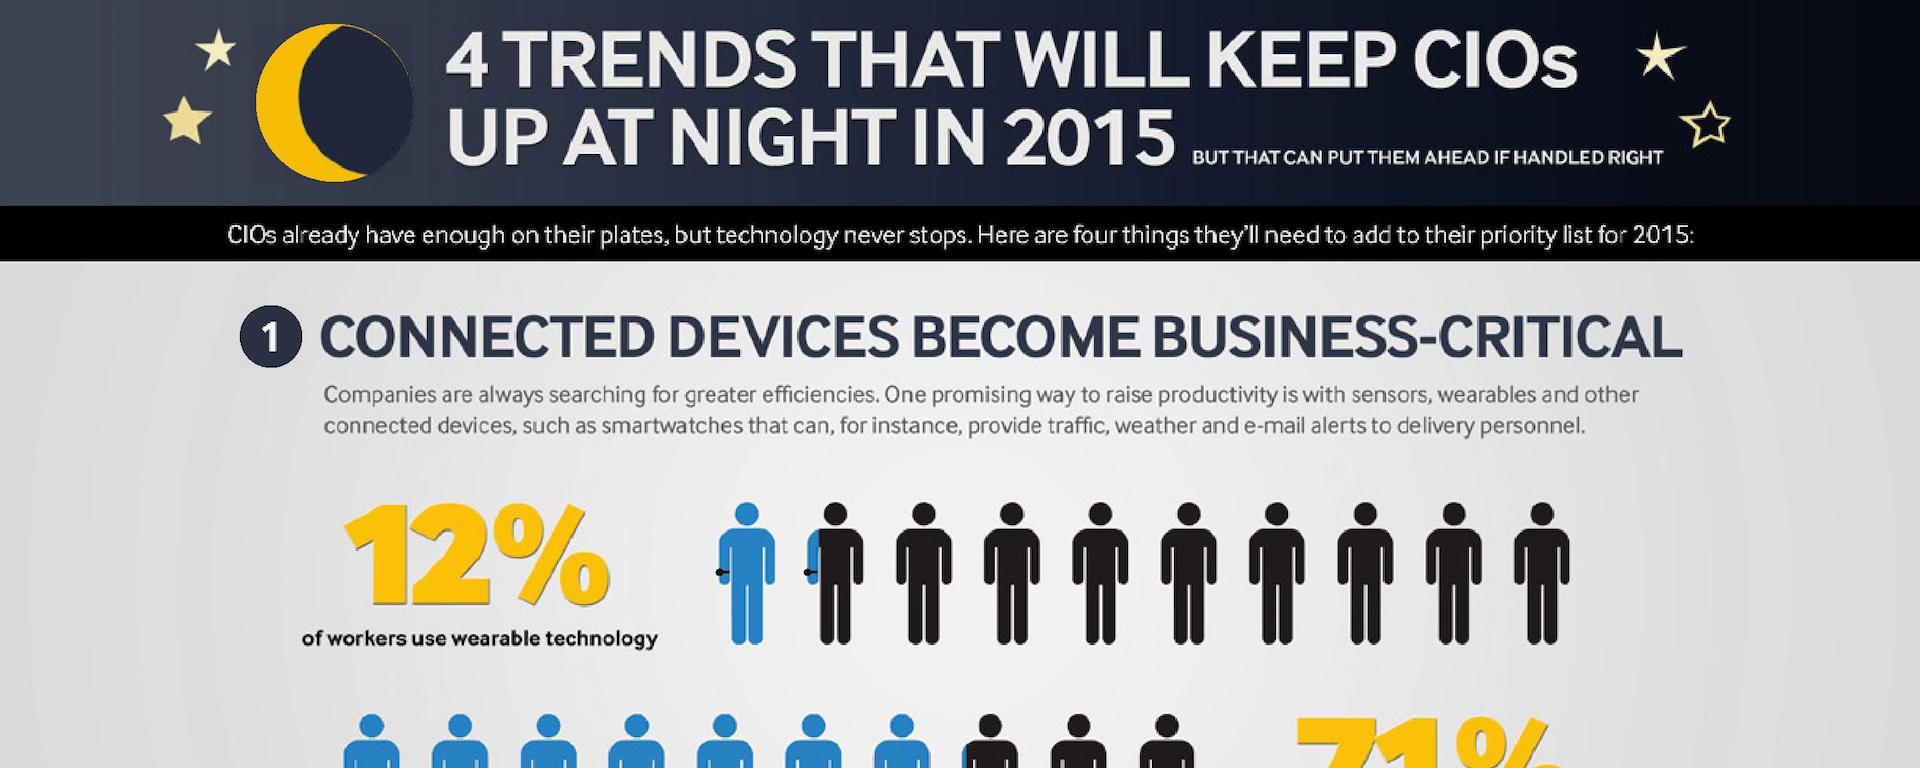 CIOs have enough on their plates, but technology never stops. Here's how connected devices will impact the business world in 2015.